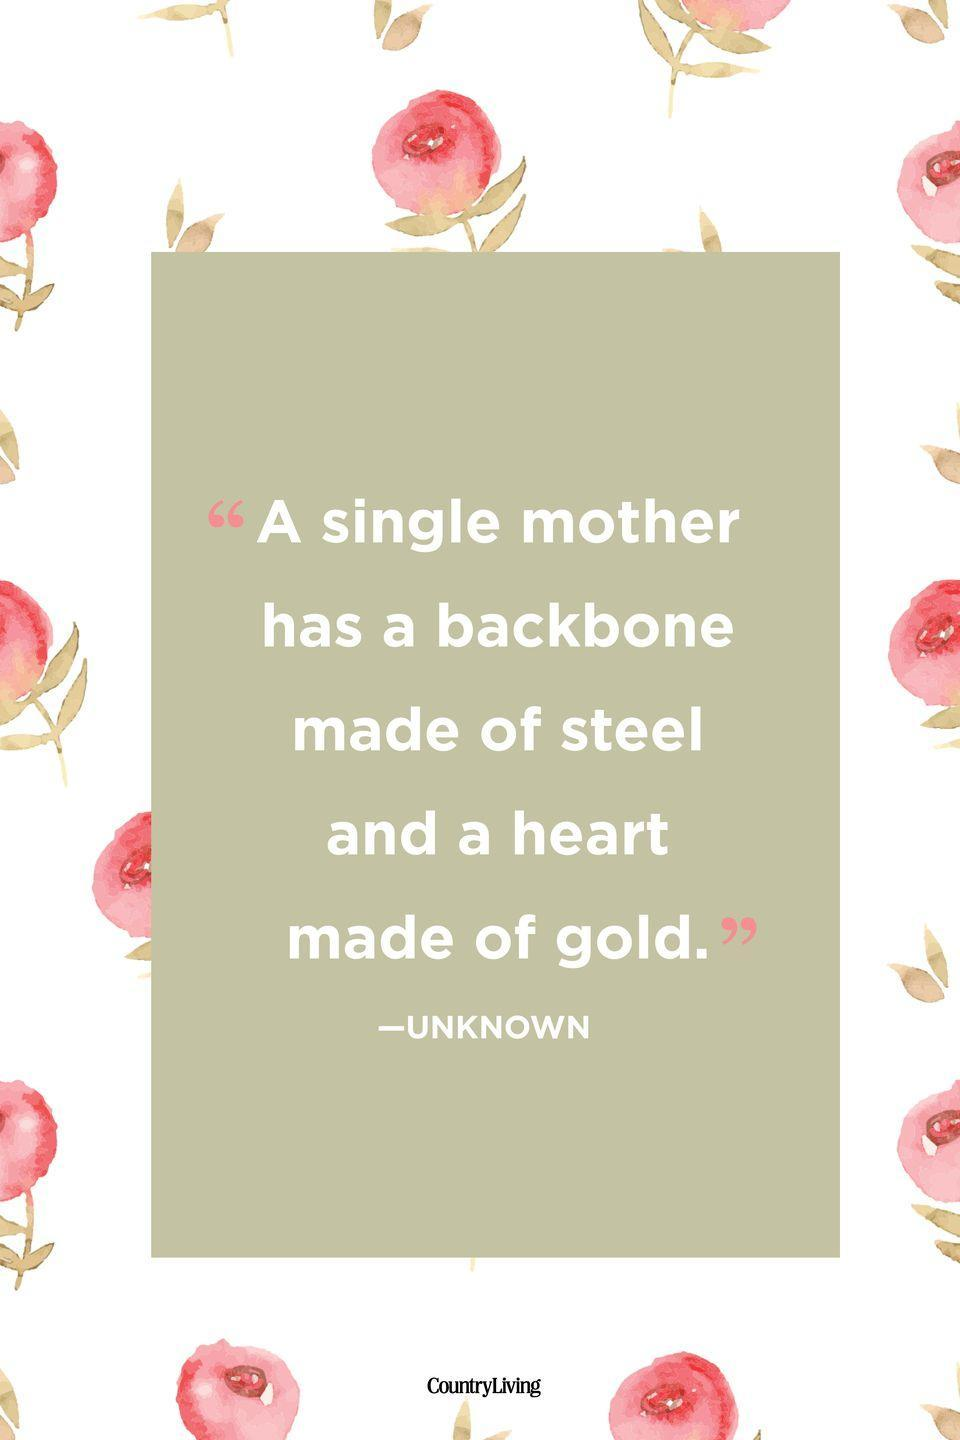 "<p>""A single mother has a backbone made of steel and a heart made of gold.""</p>"